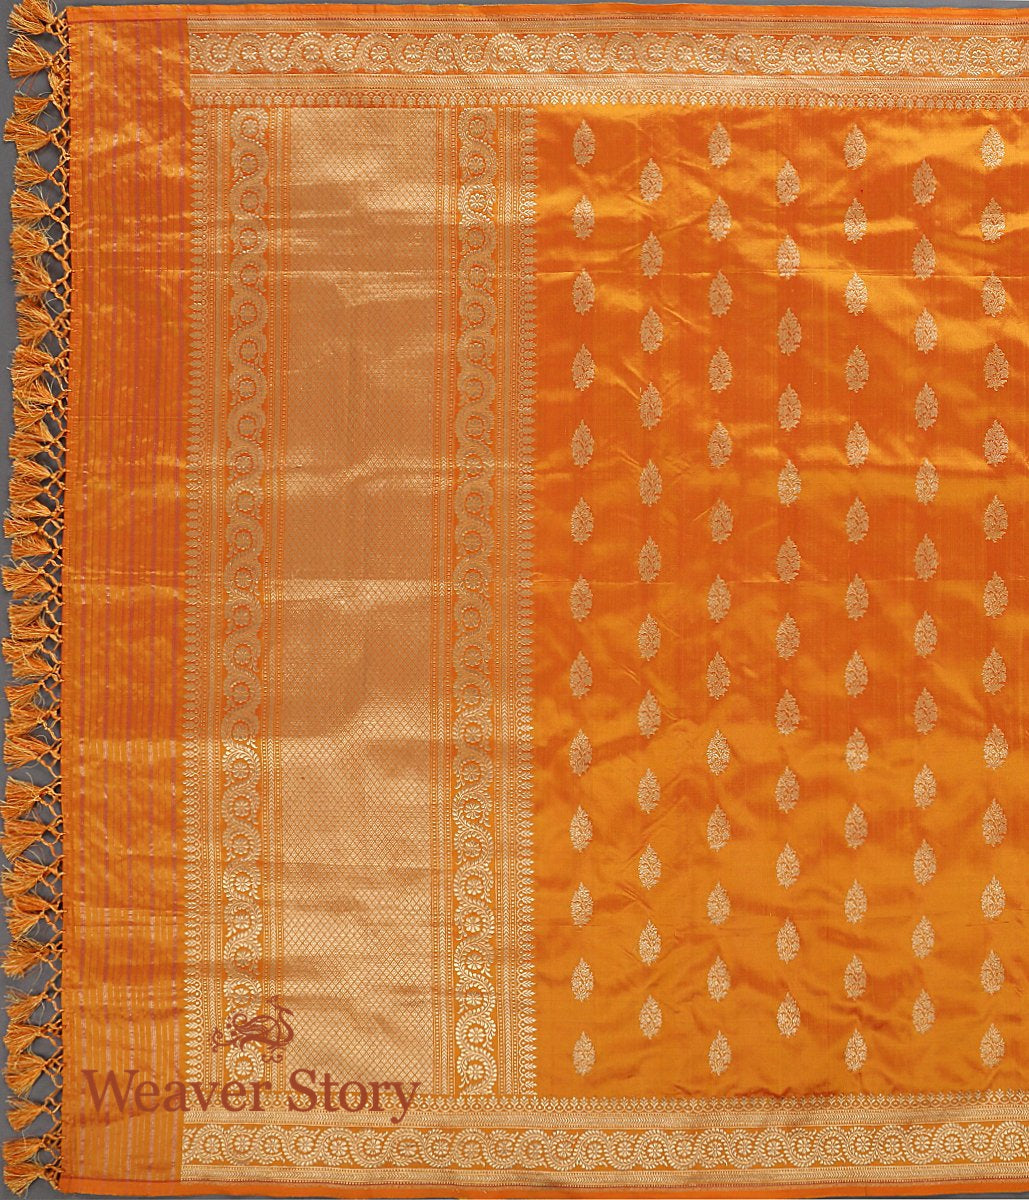 Handwoven Golden Yellow Kadhwa Booti Dupatta